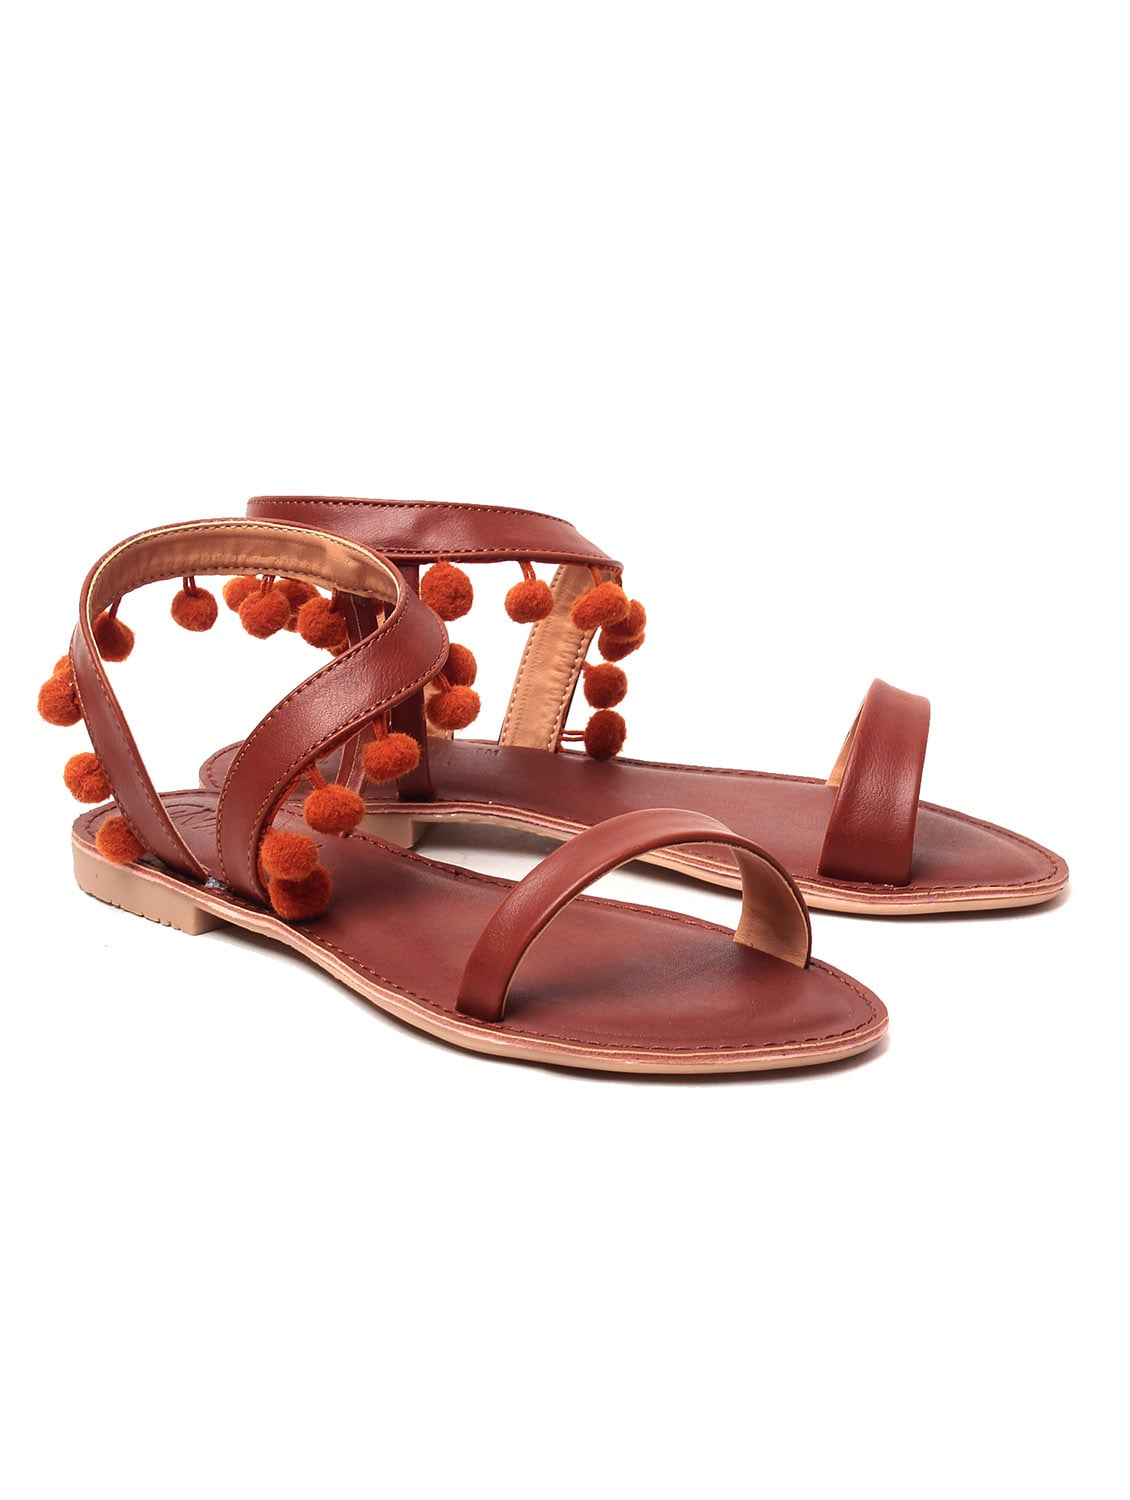 d53c2eaca072 Buy Brown Pom Pom Sandal for Women from Gnist for ₹528 at 47% off ...